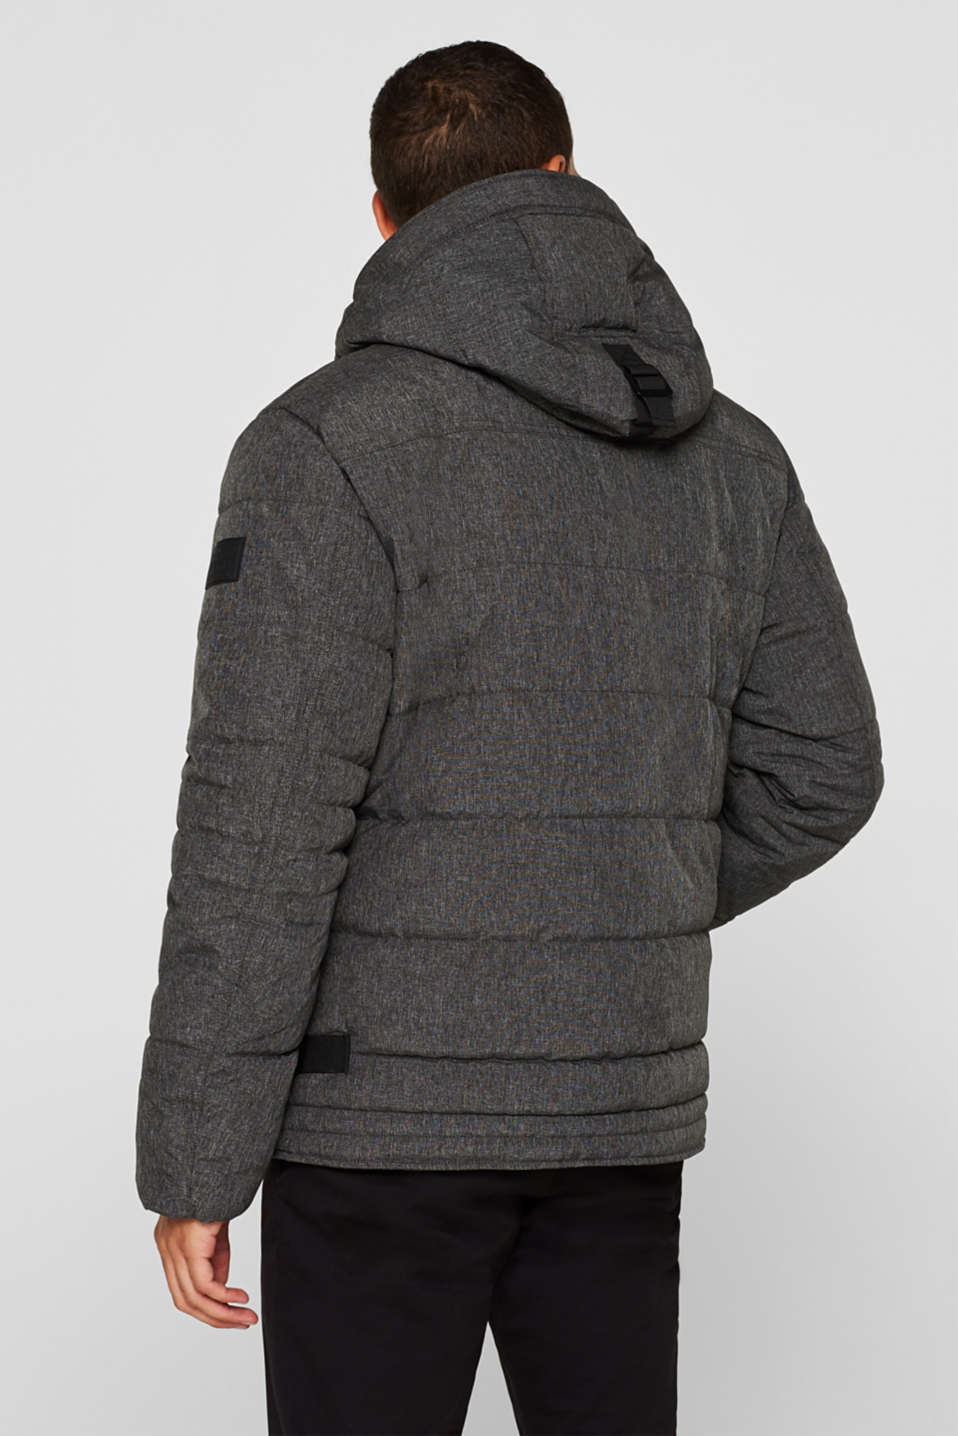 Winter jacket with an adjustable hood, GREY, detail image number 3